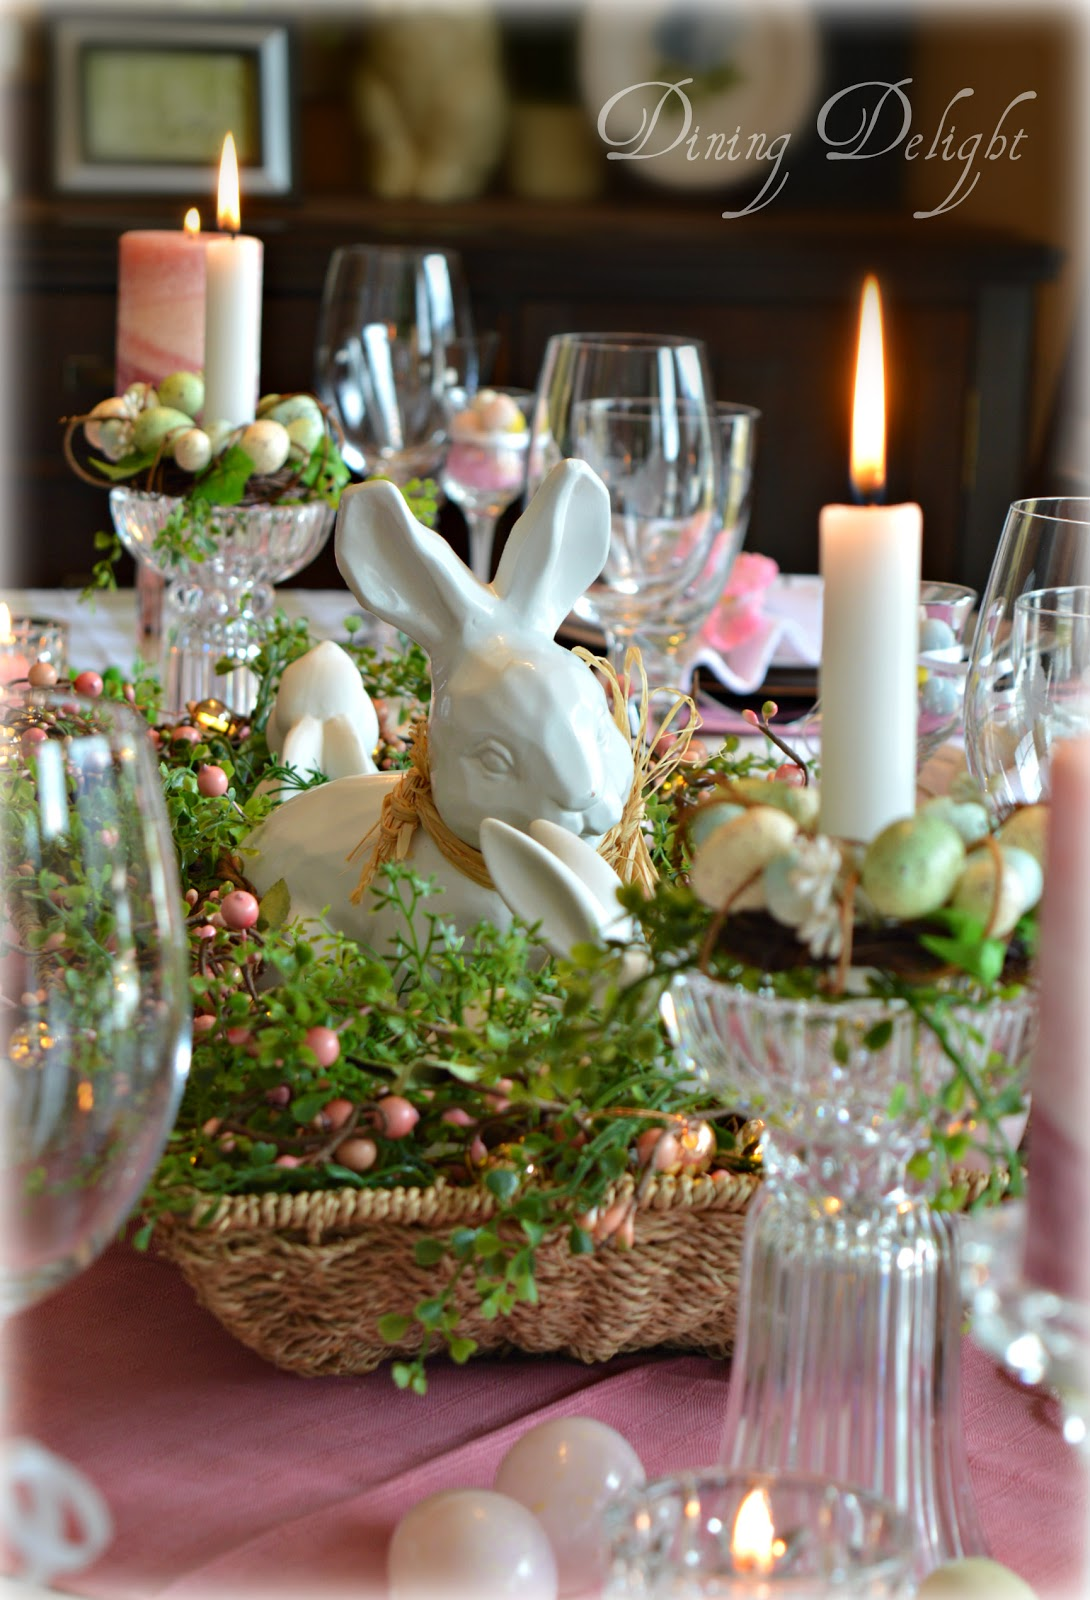 Dining Delight Pink Amp White Easter Tablescape